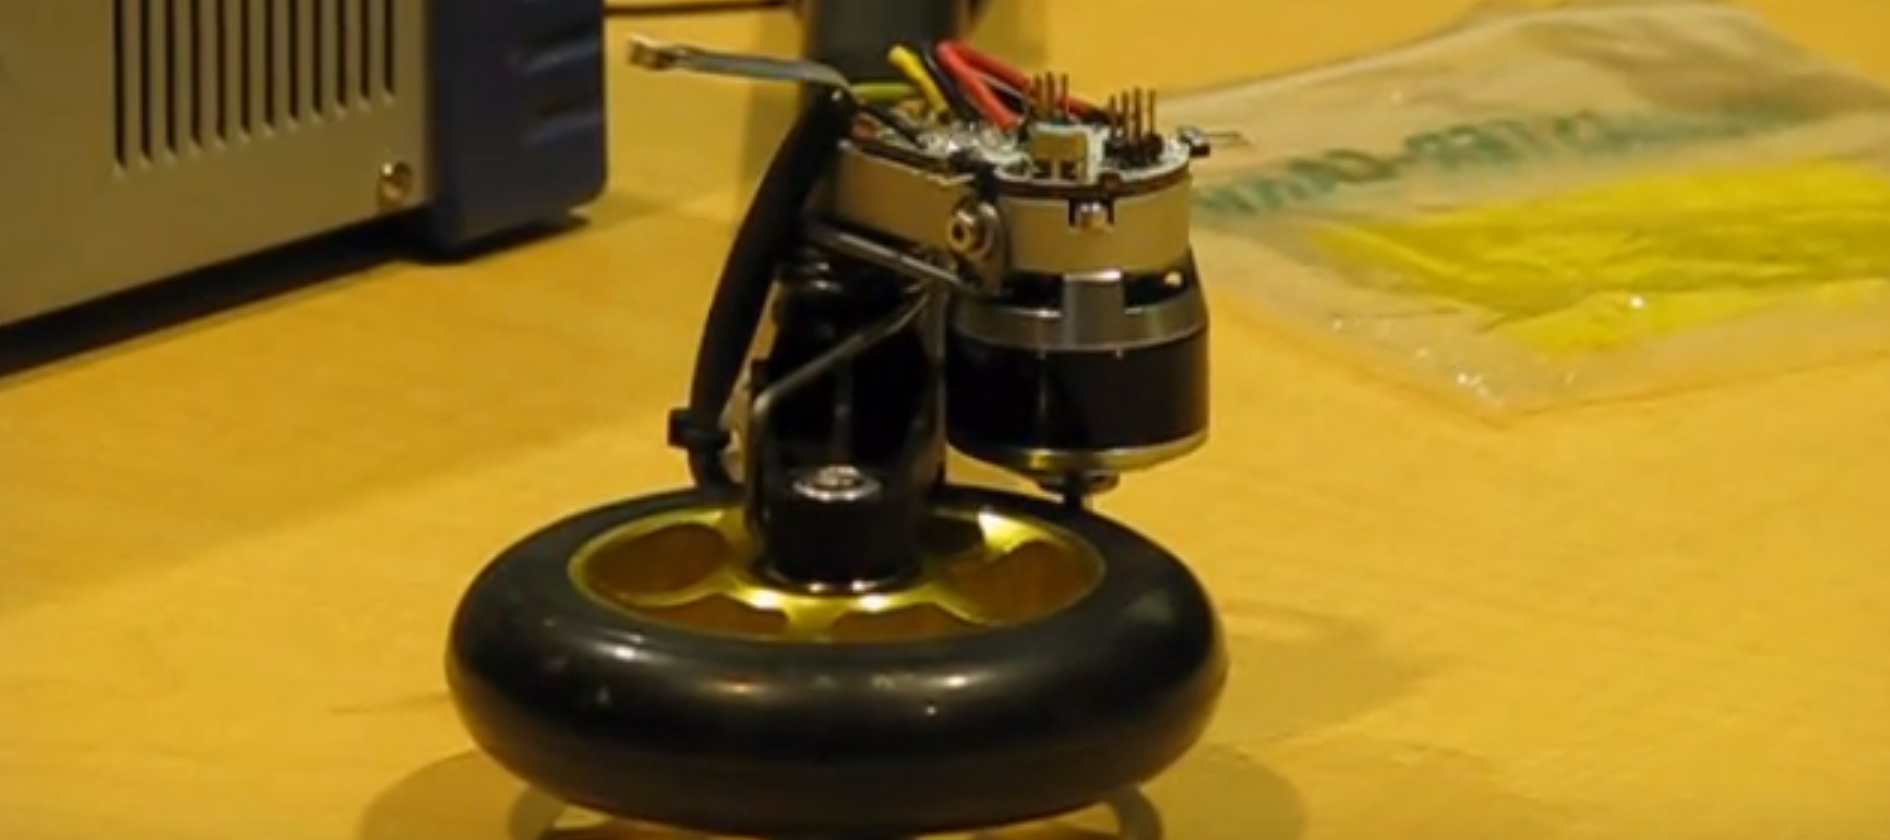 3-Phase BLDC Motor Controller Will Run You $20 In Parts | Hackaday